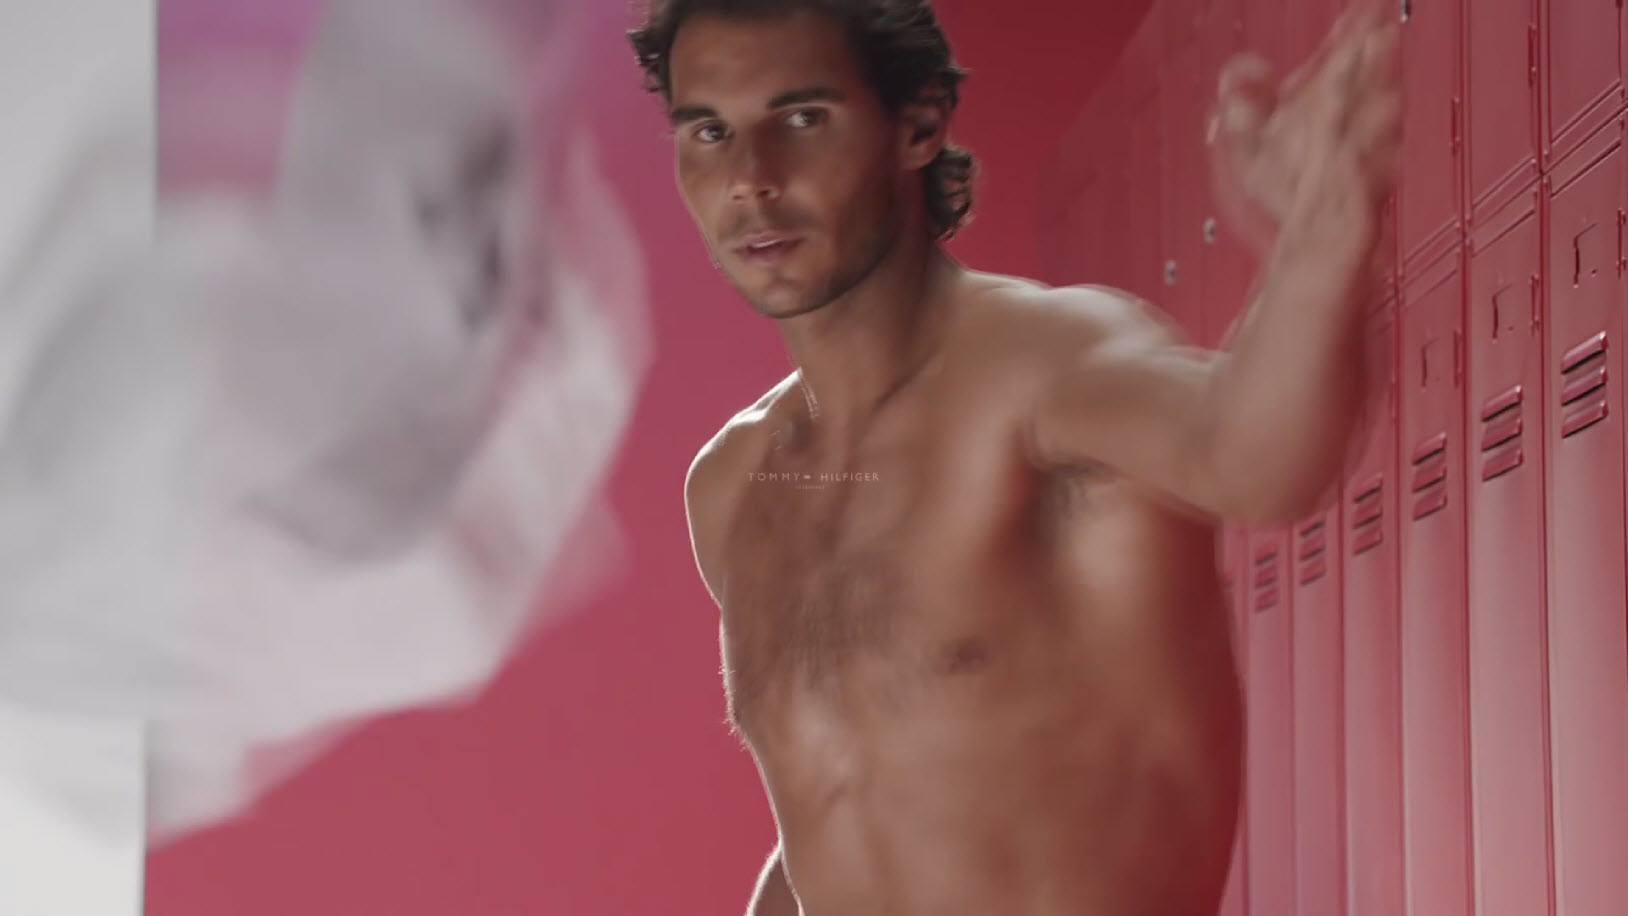 Rafael Nadal Strips It Down For New Video | Movie TV Tech